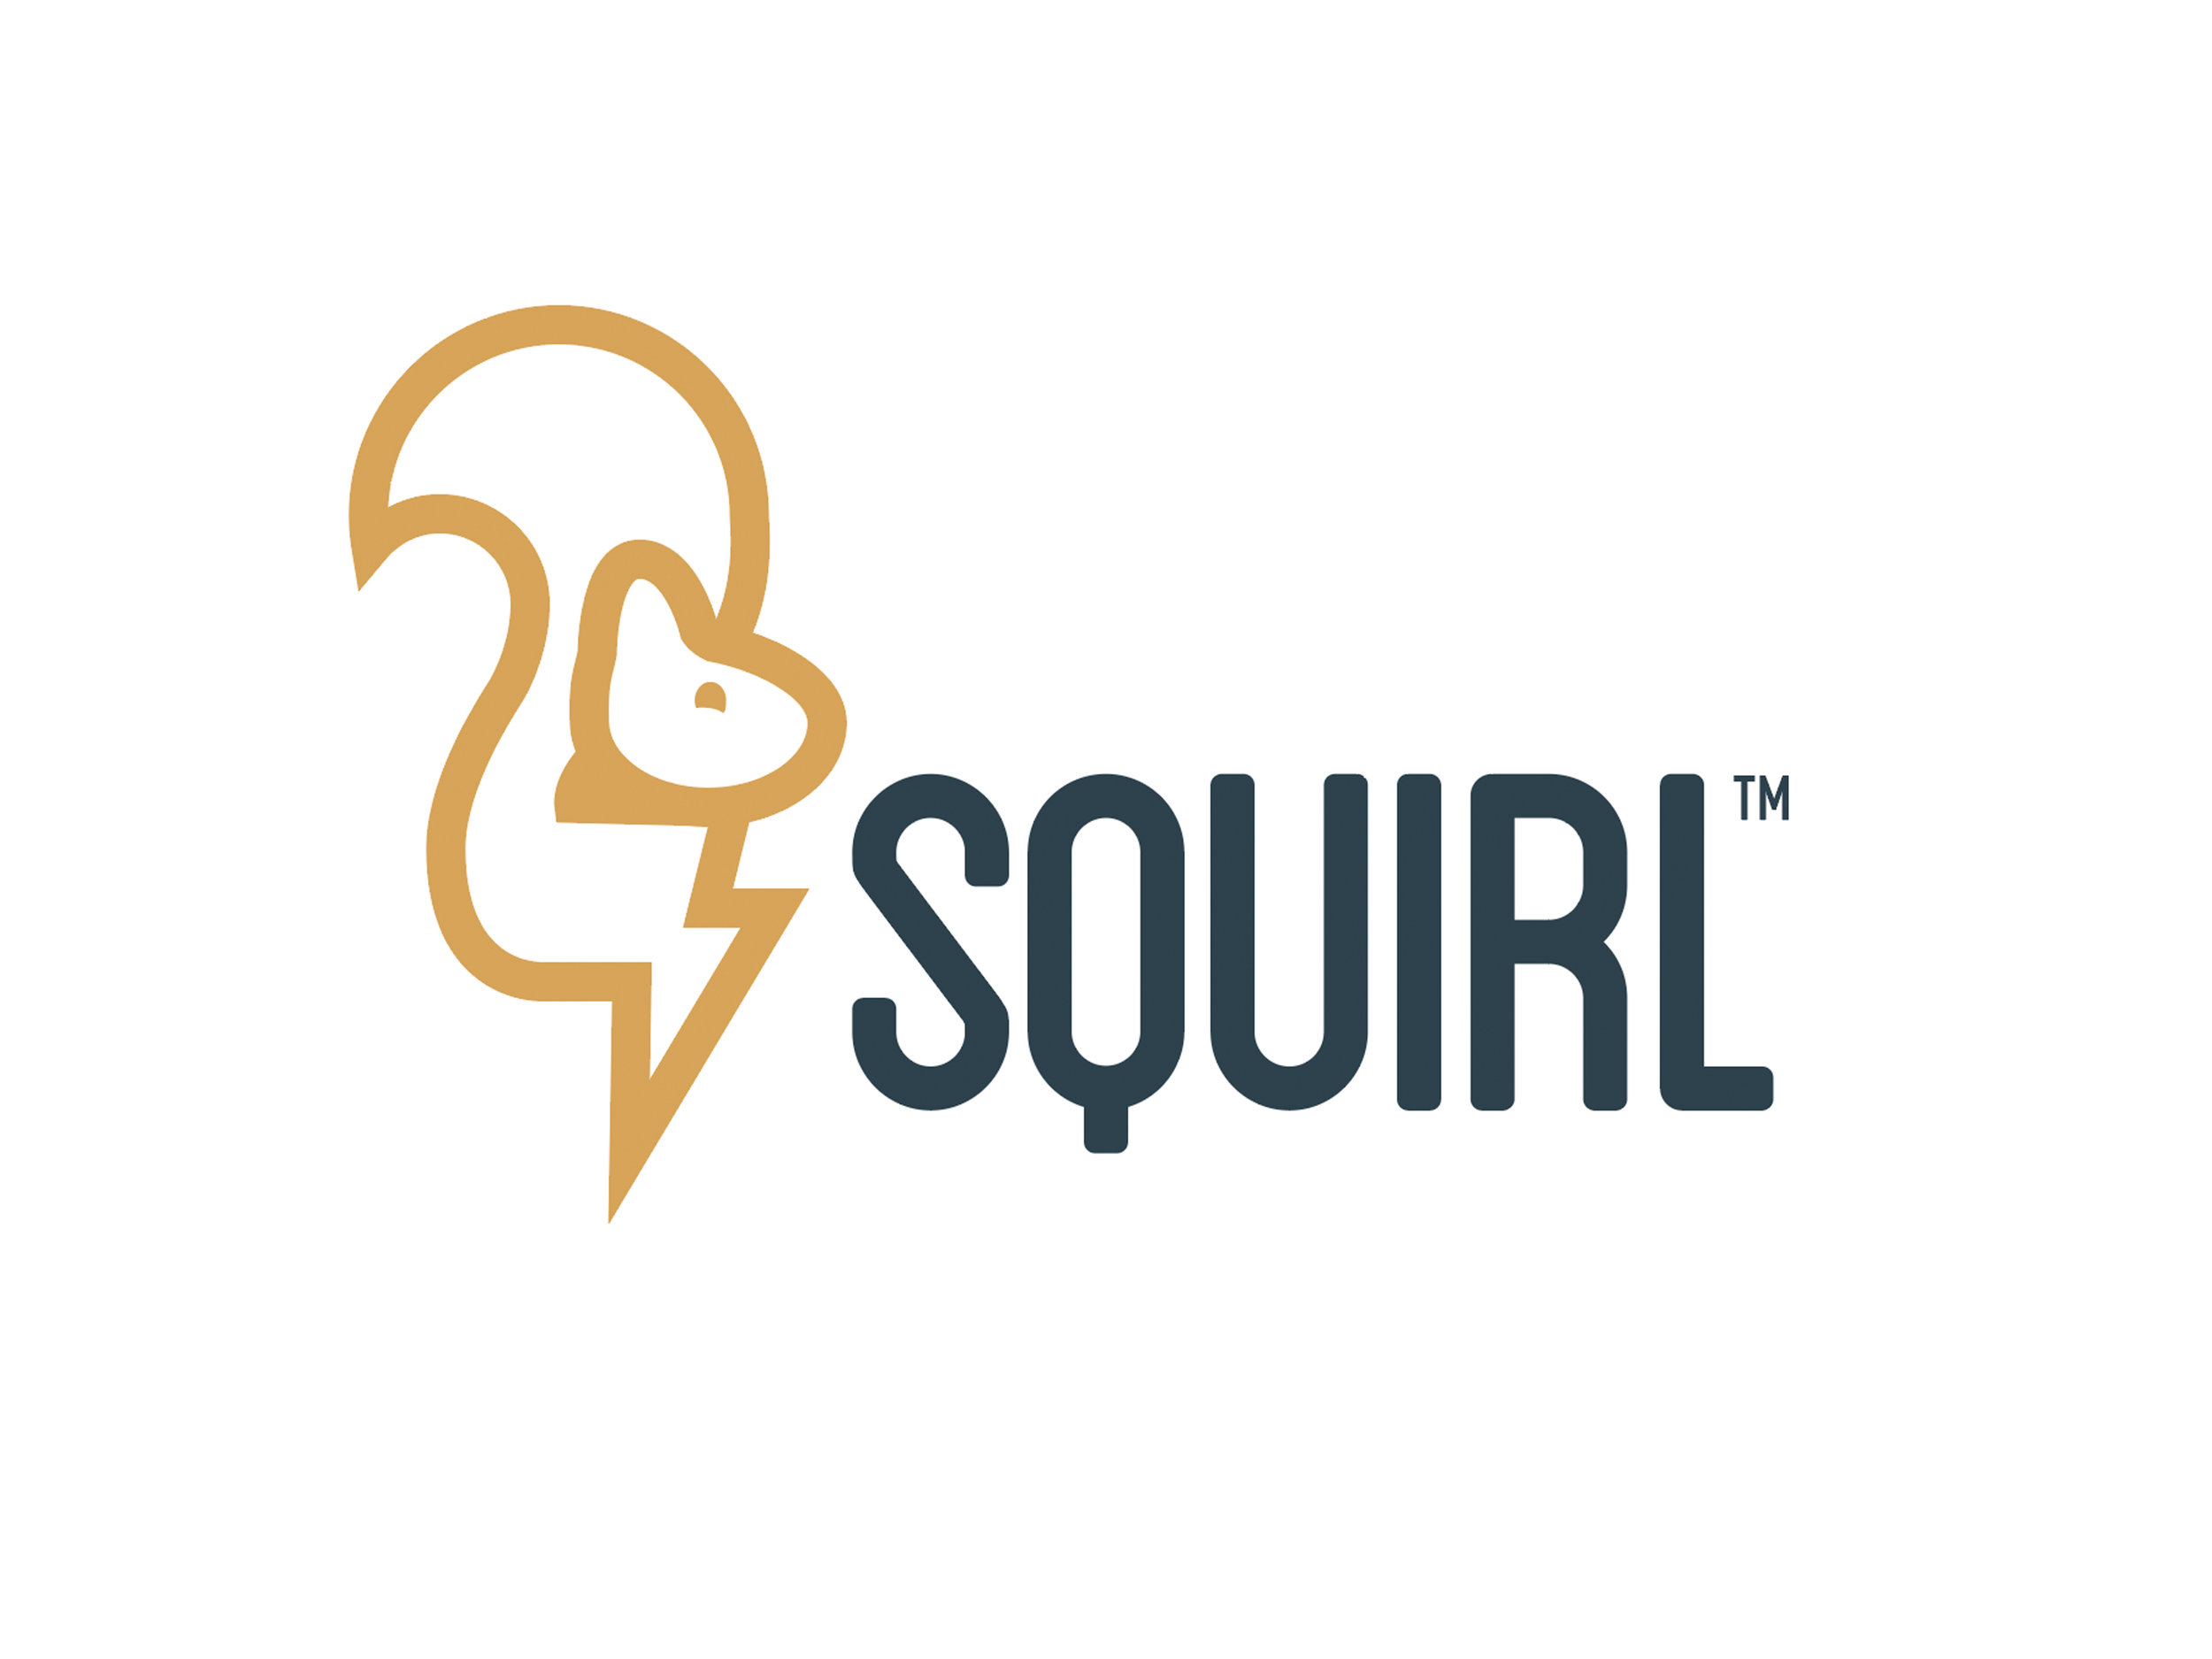 CLICK HERE TO SEE MORE ASSETS THAT WHOVILLE CREATED FOR SQUIRL